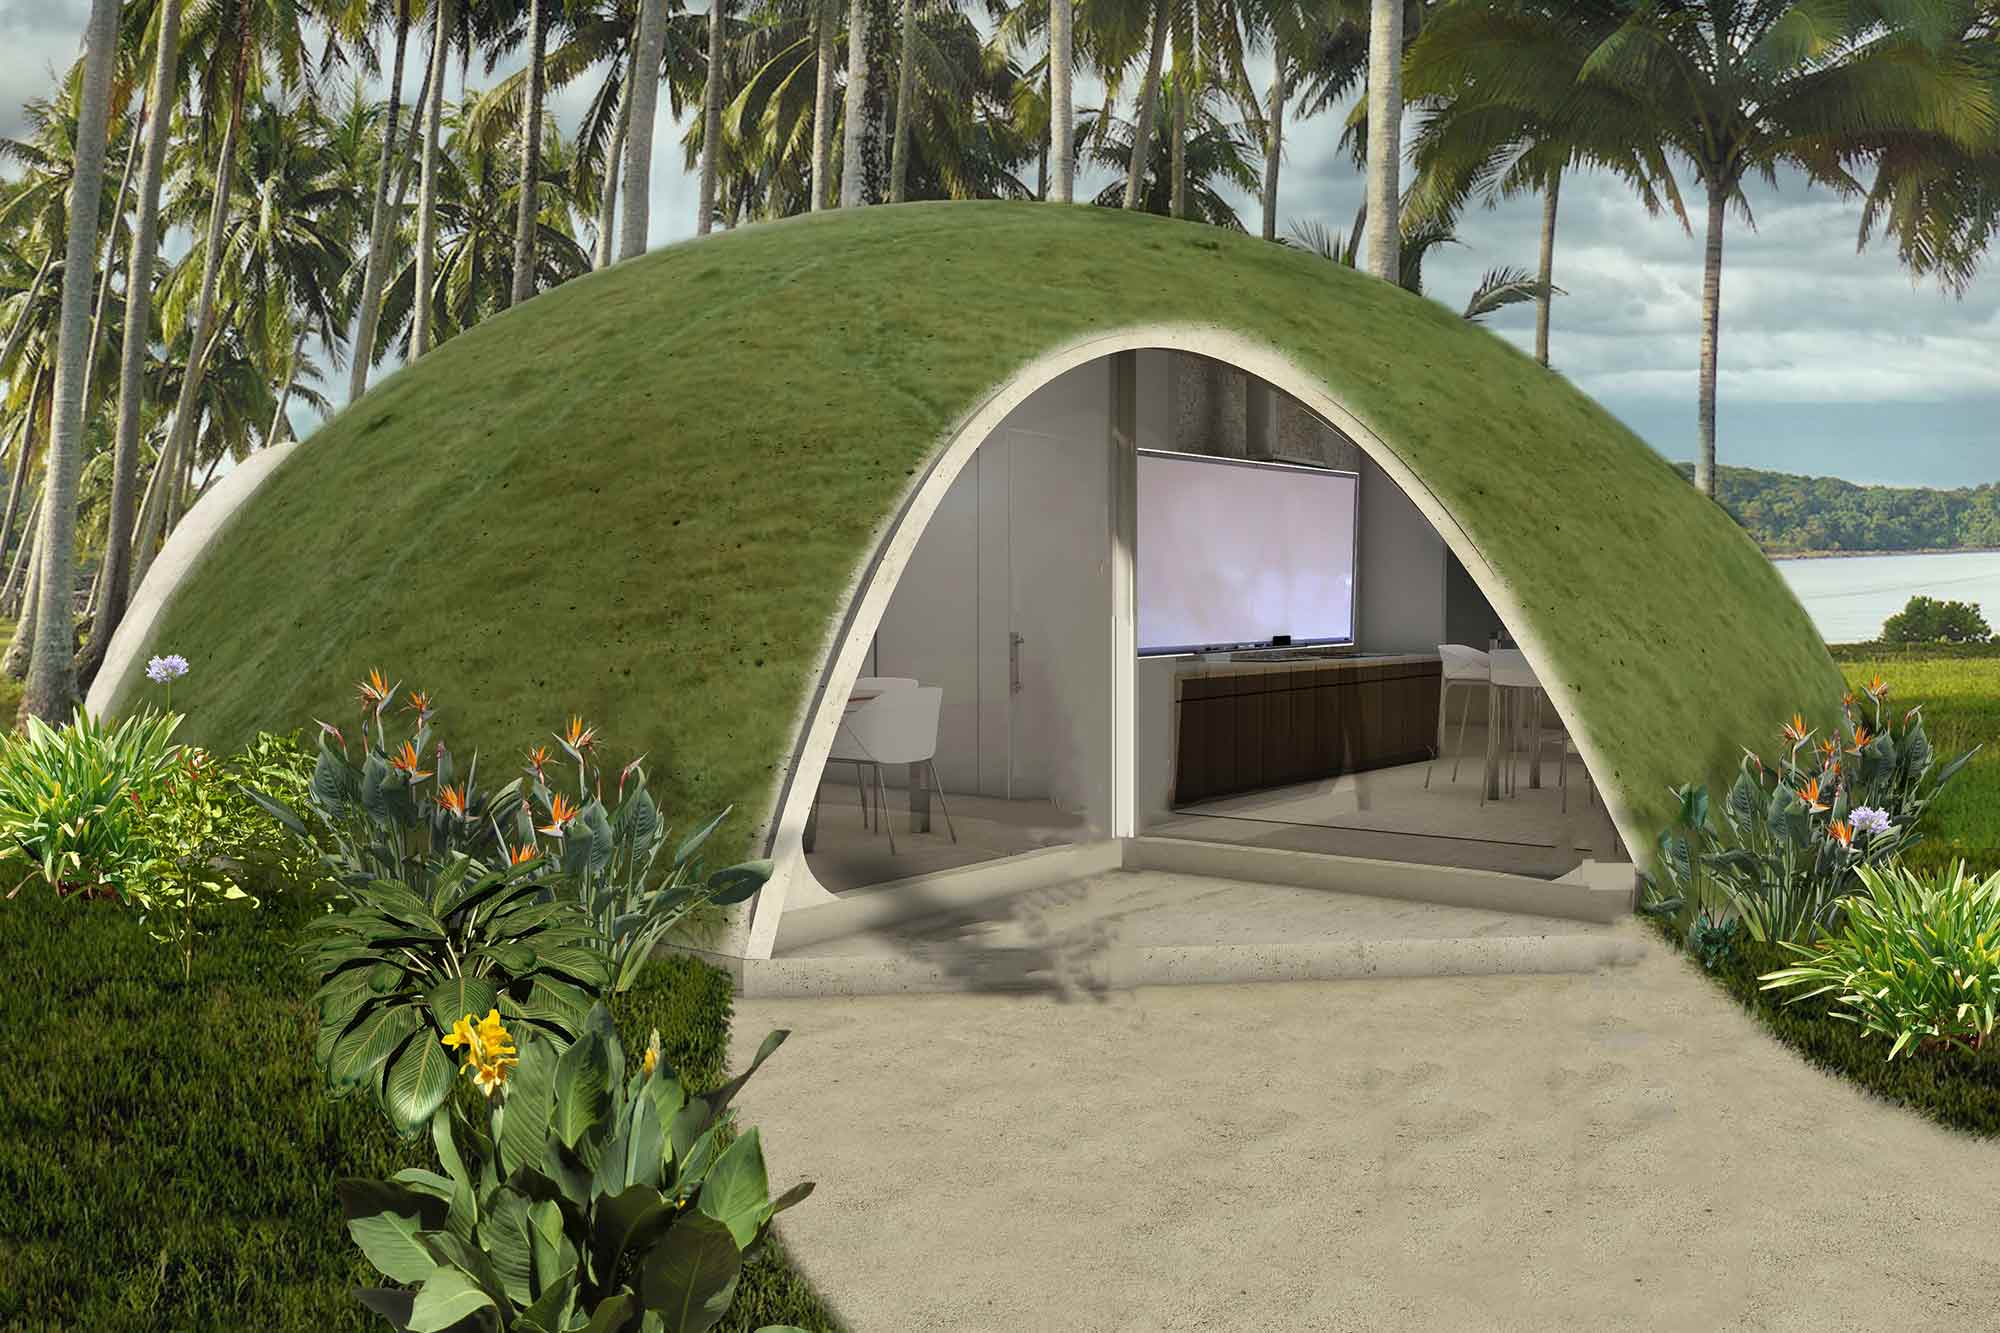 Ideal View Project Binishells Redesigning Constructionhome Binishells Binishell Dome Homes Buy Colorful Binishell Dome Homes curbed Binishell Dome Homes